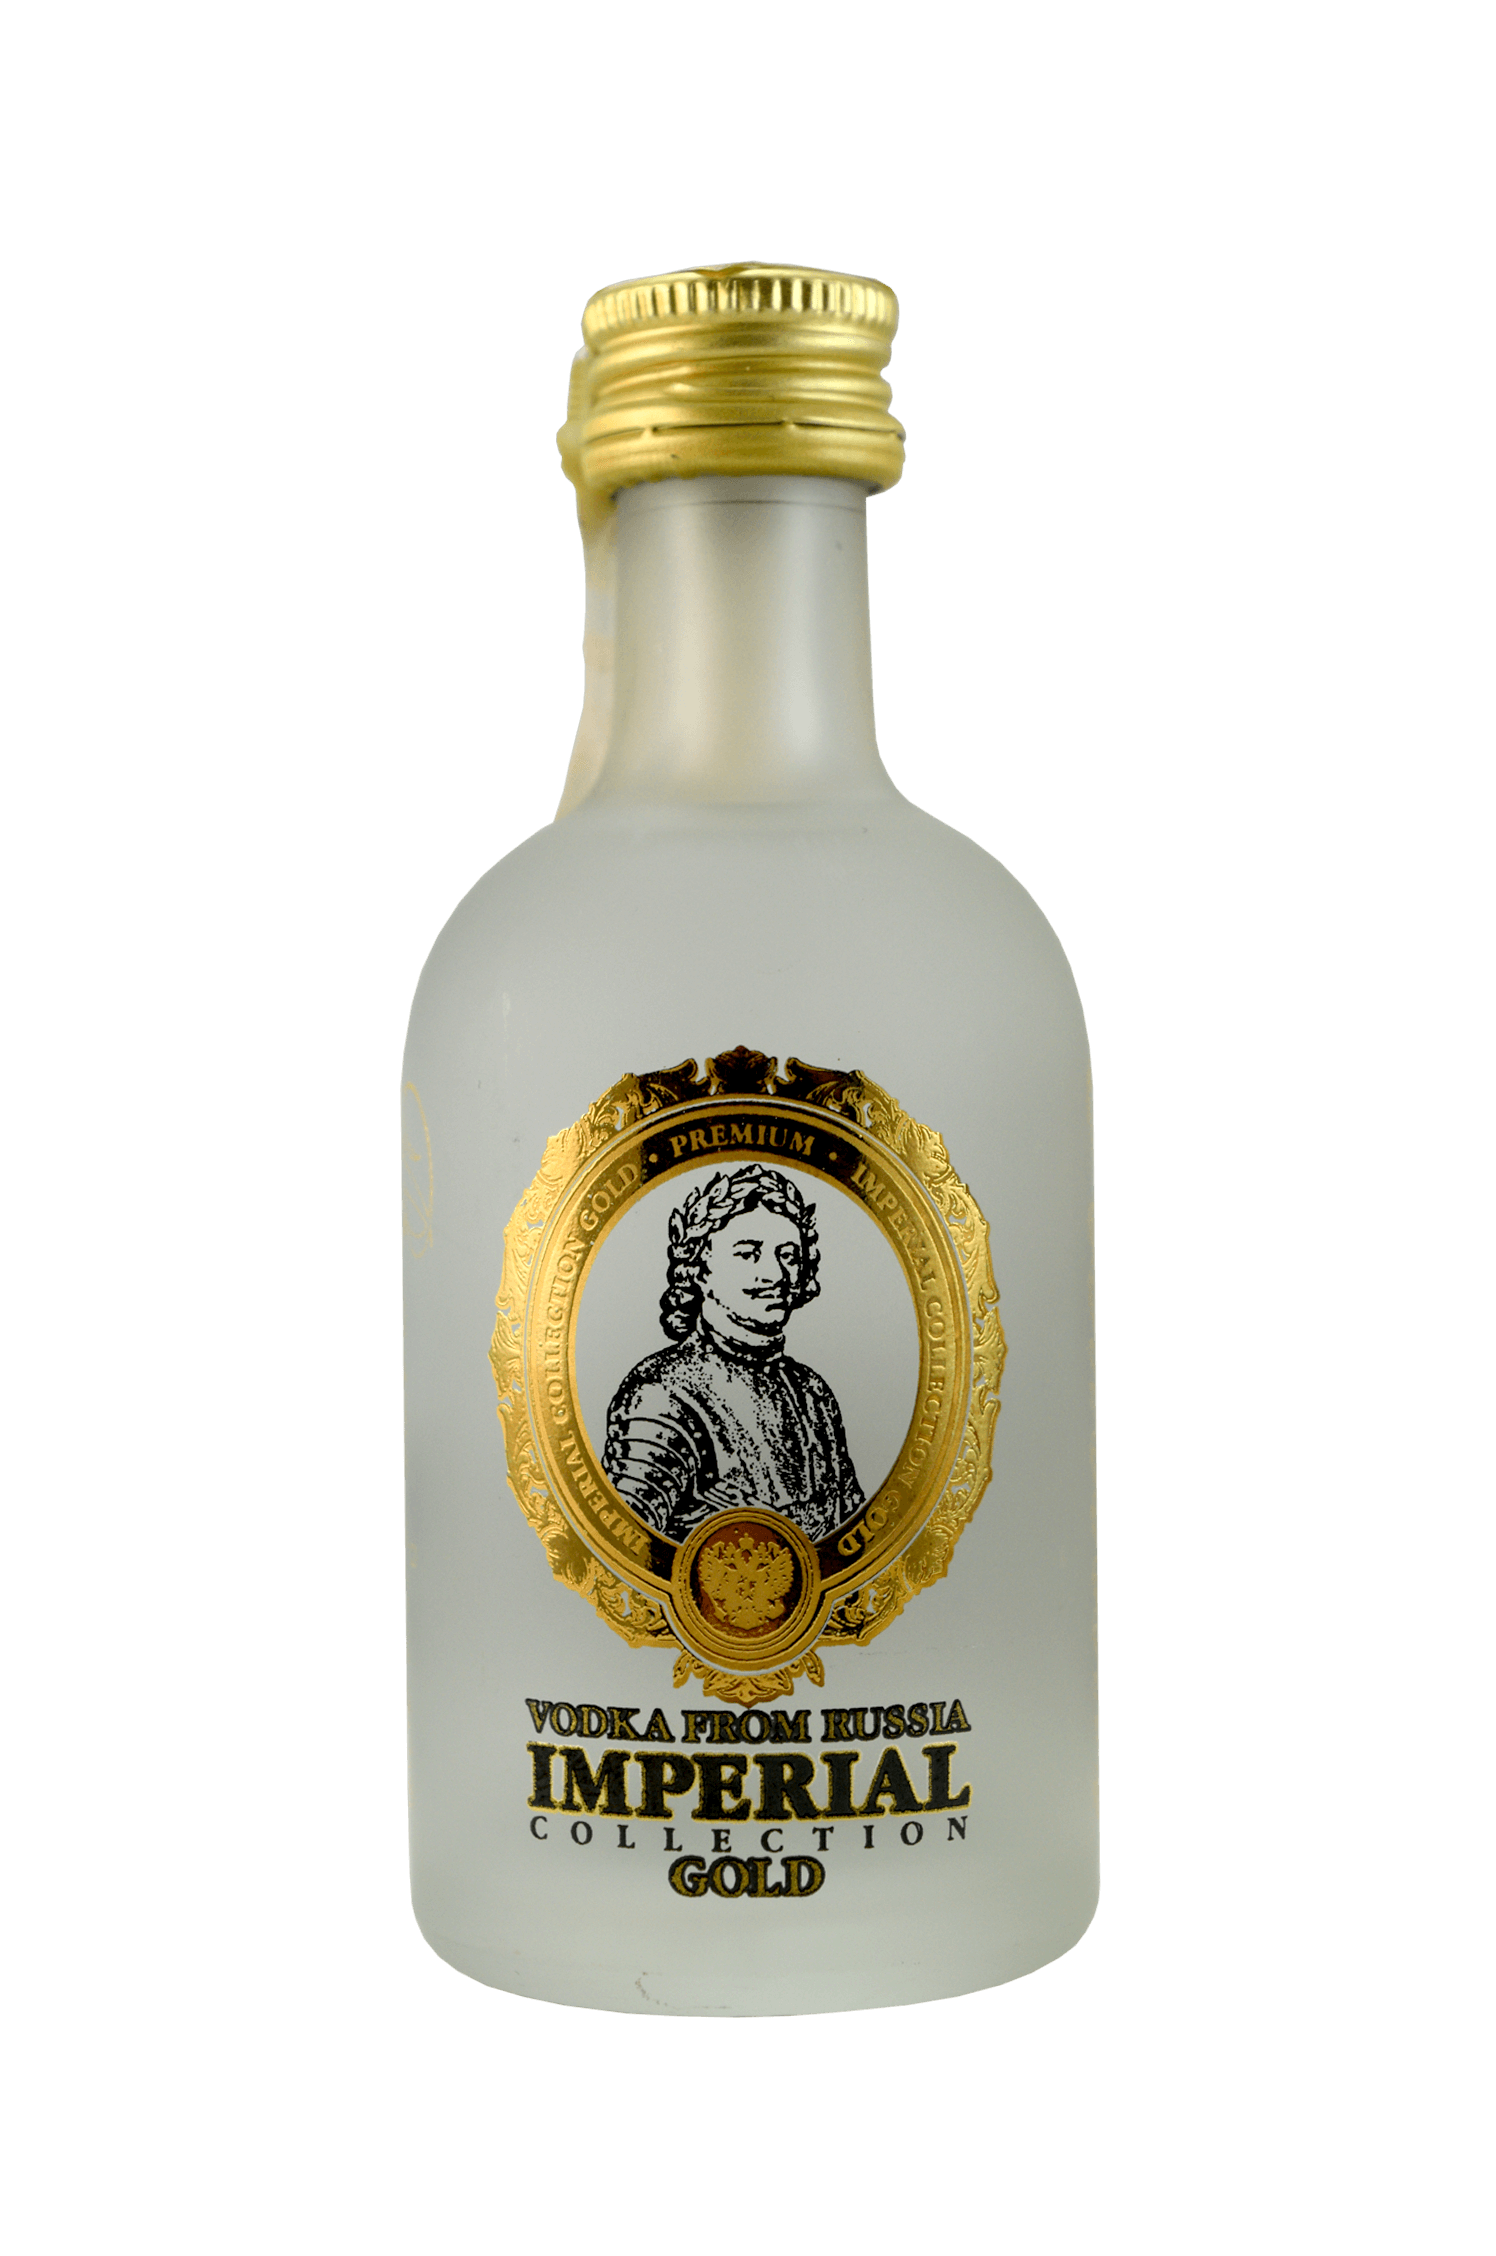 Vodka From Russia Imperial Gold